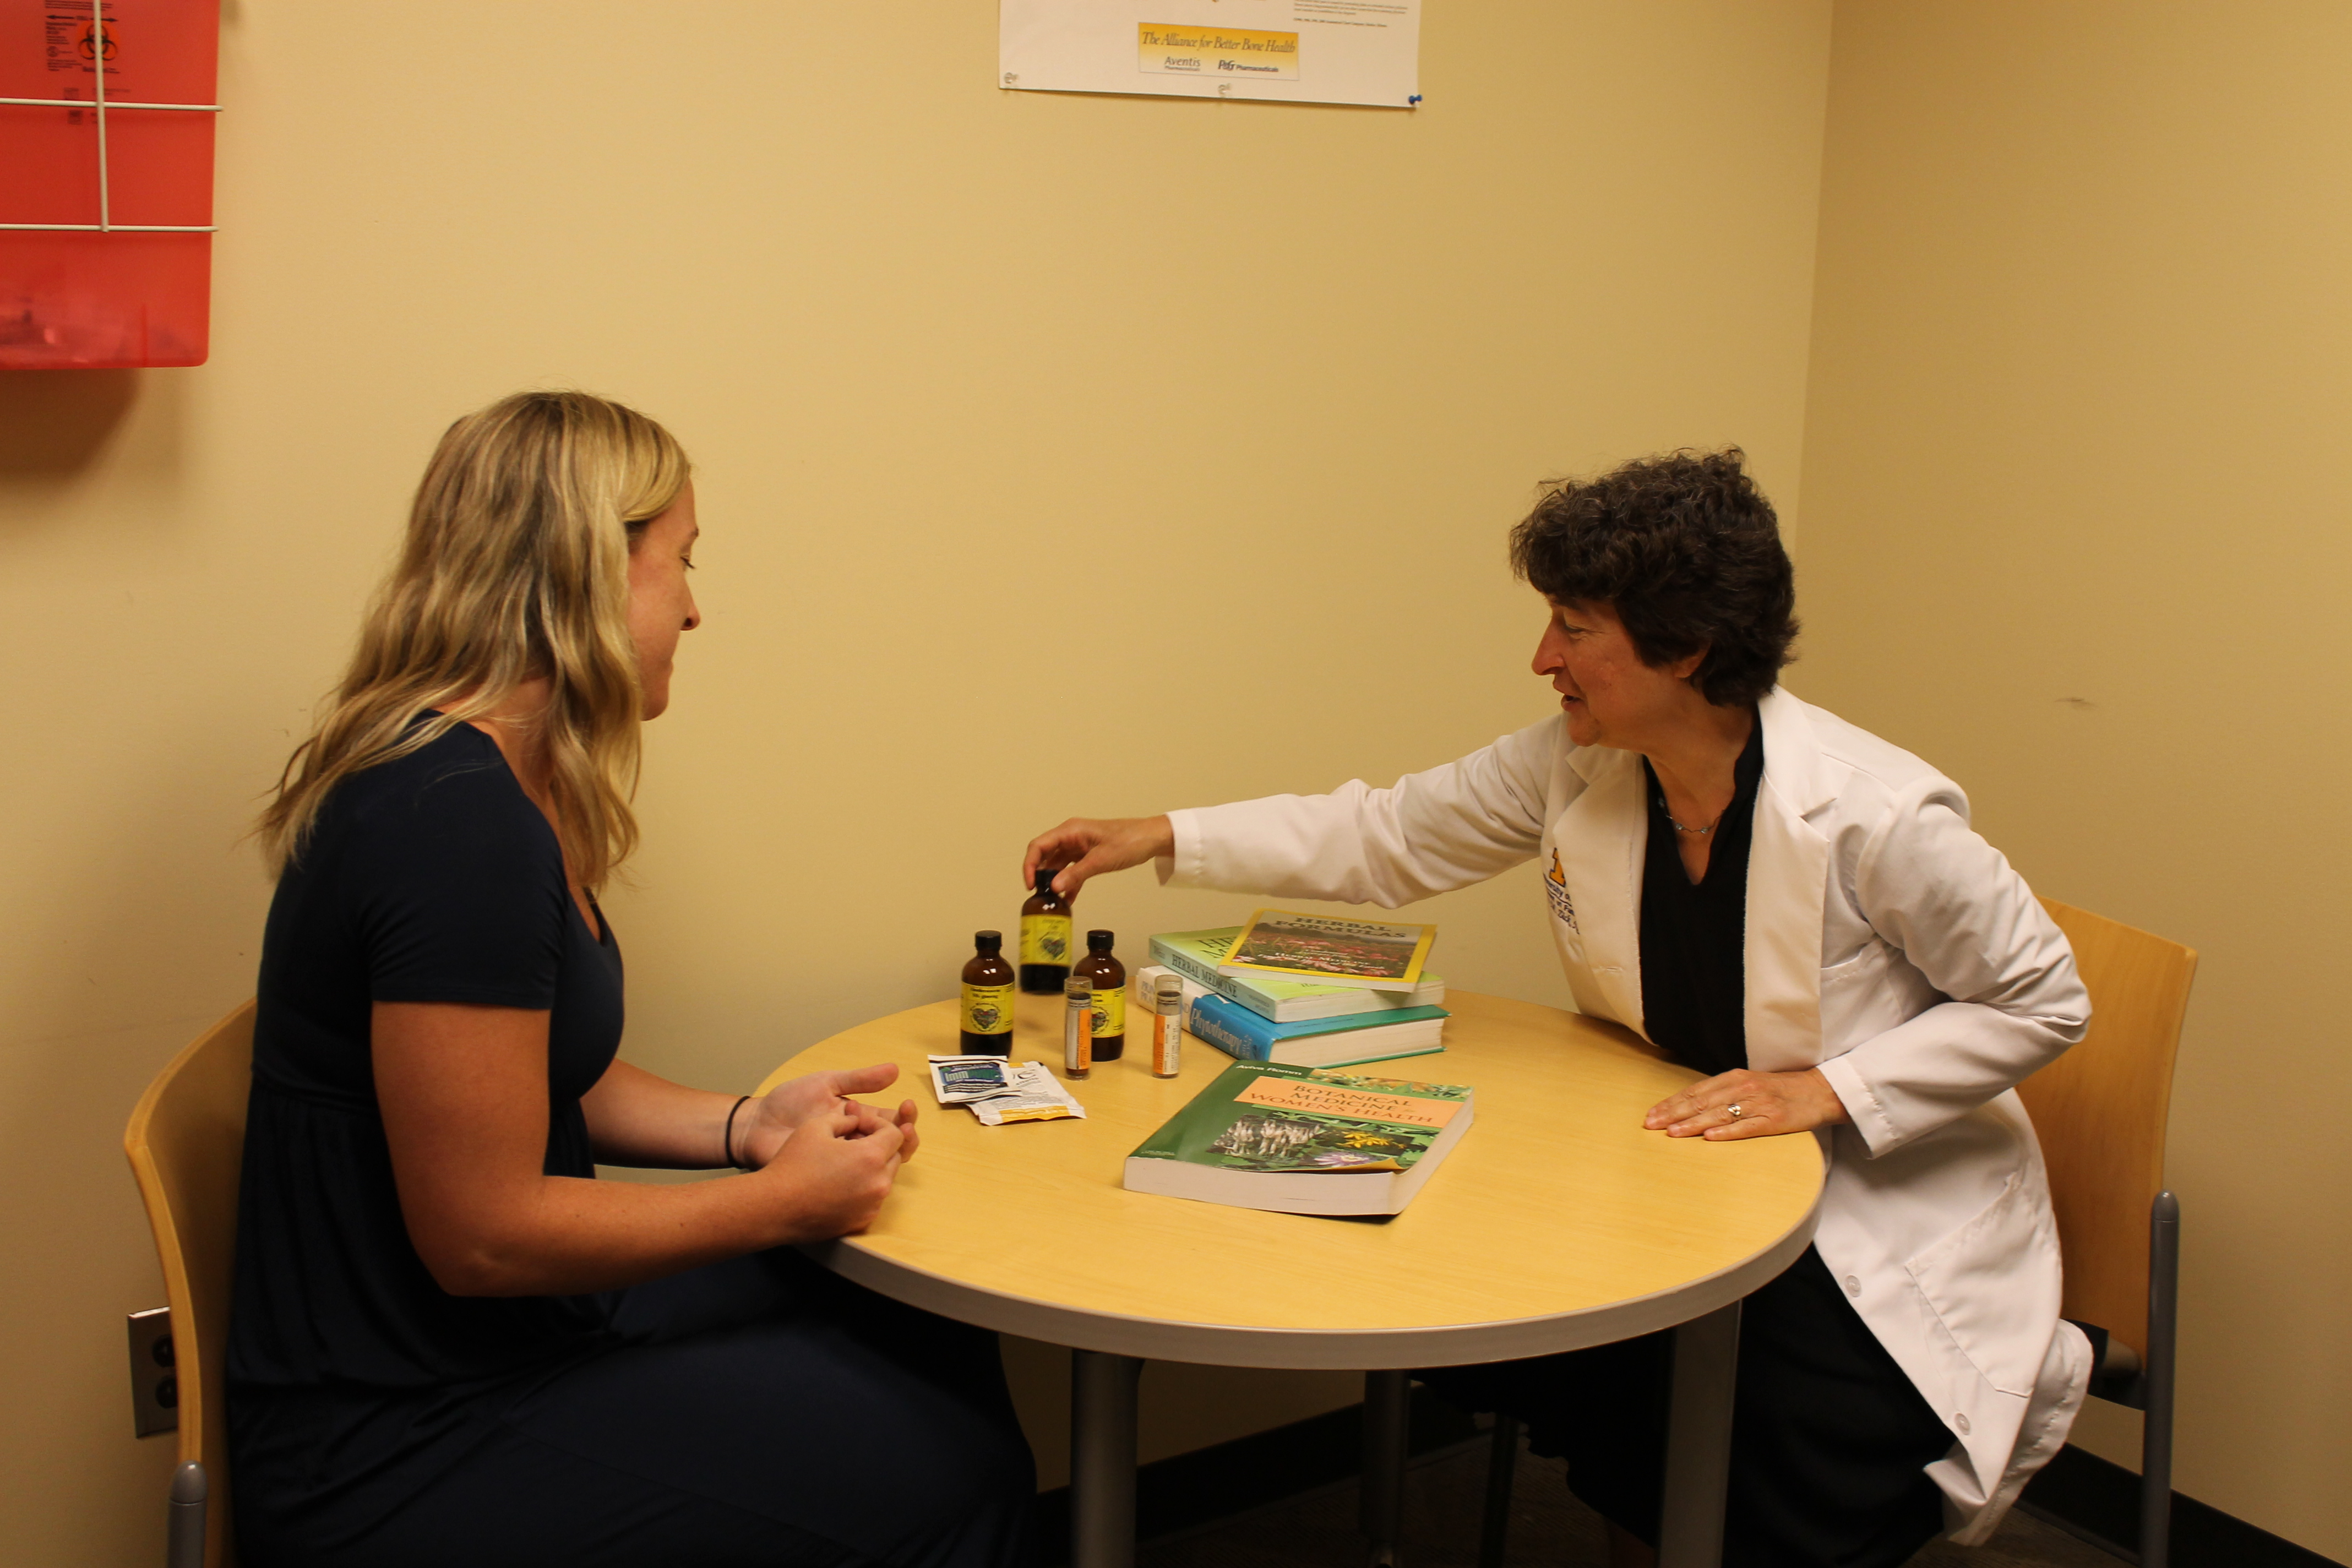 Dr. Suzie Zick reviews nutrition information seated at a table with another person.